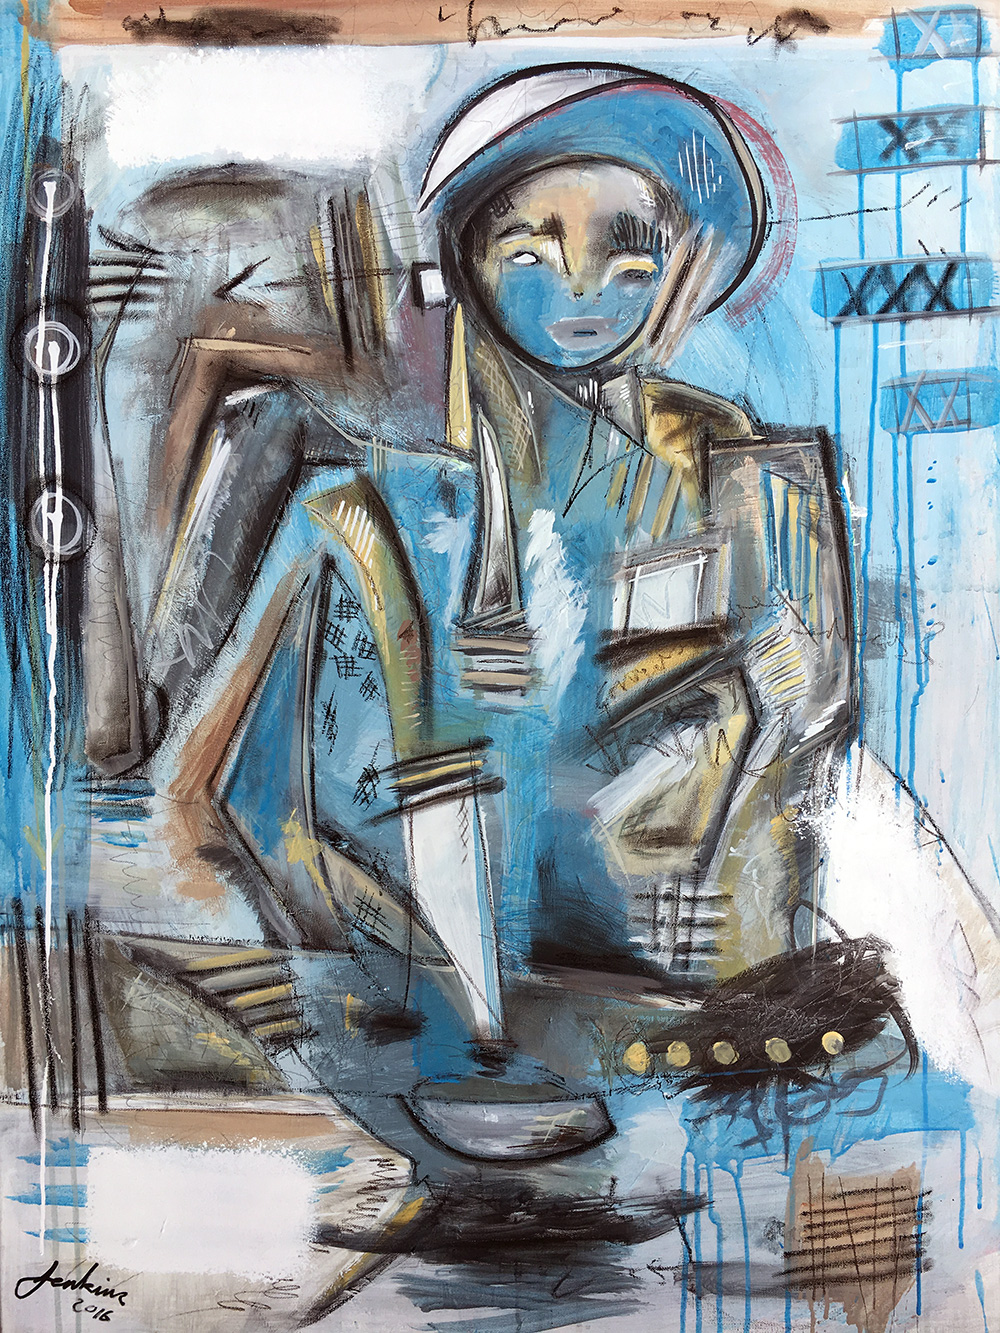 """Boy Blue"" by Joshua Jenkins, 40x30x1in, acrylic and mixed media on canvas (2016)"